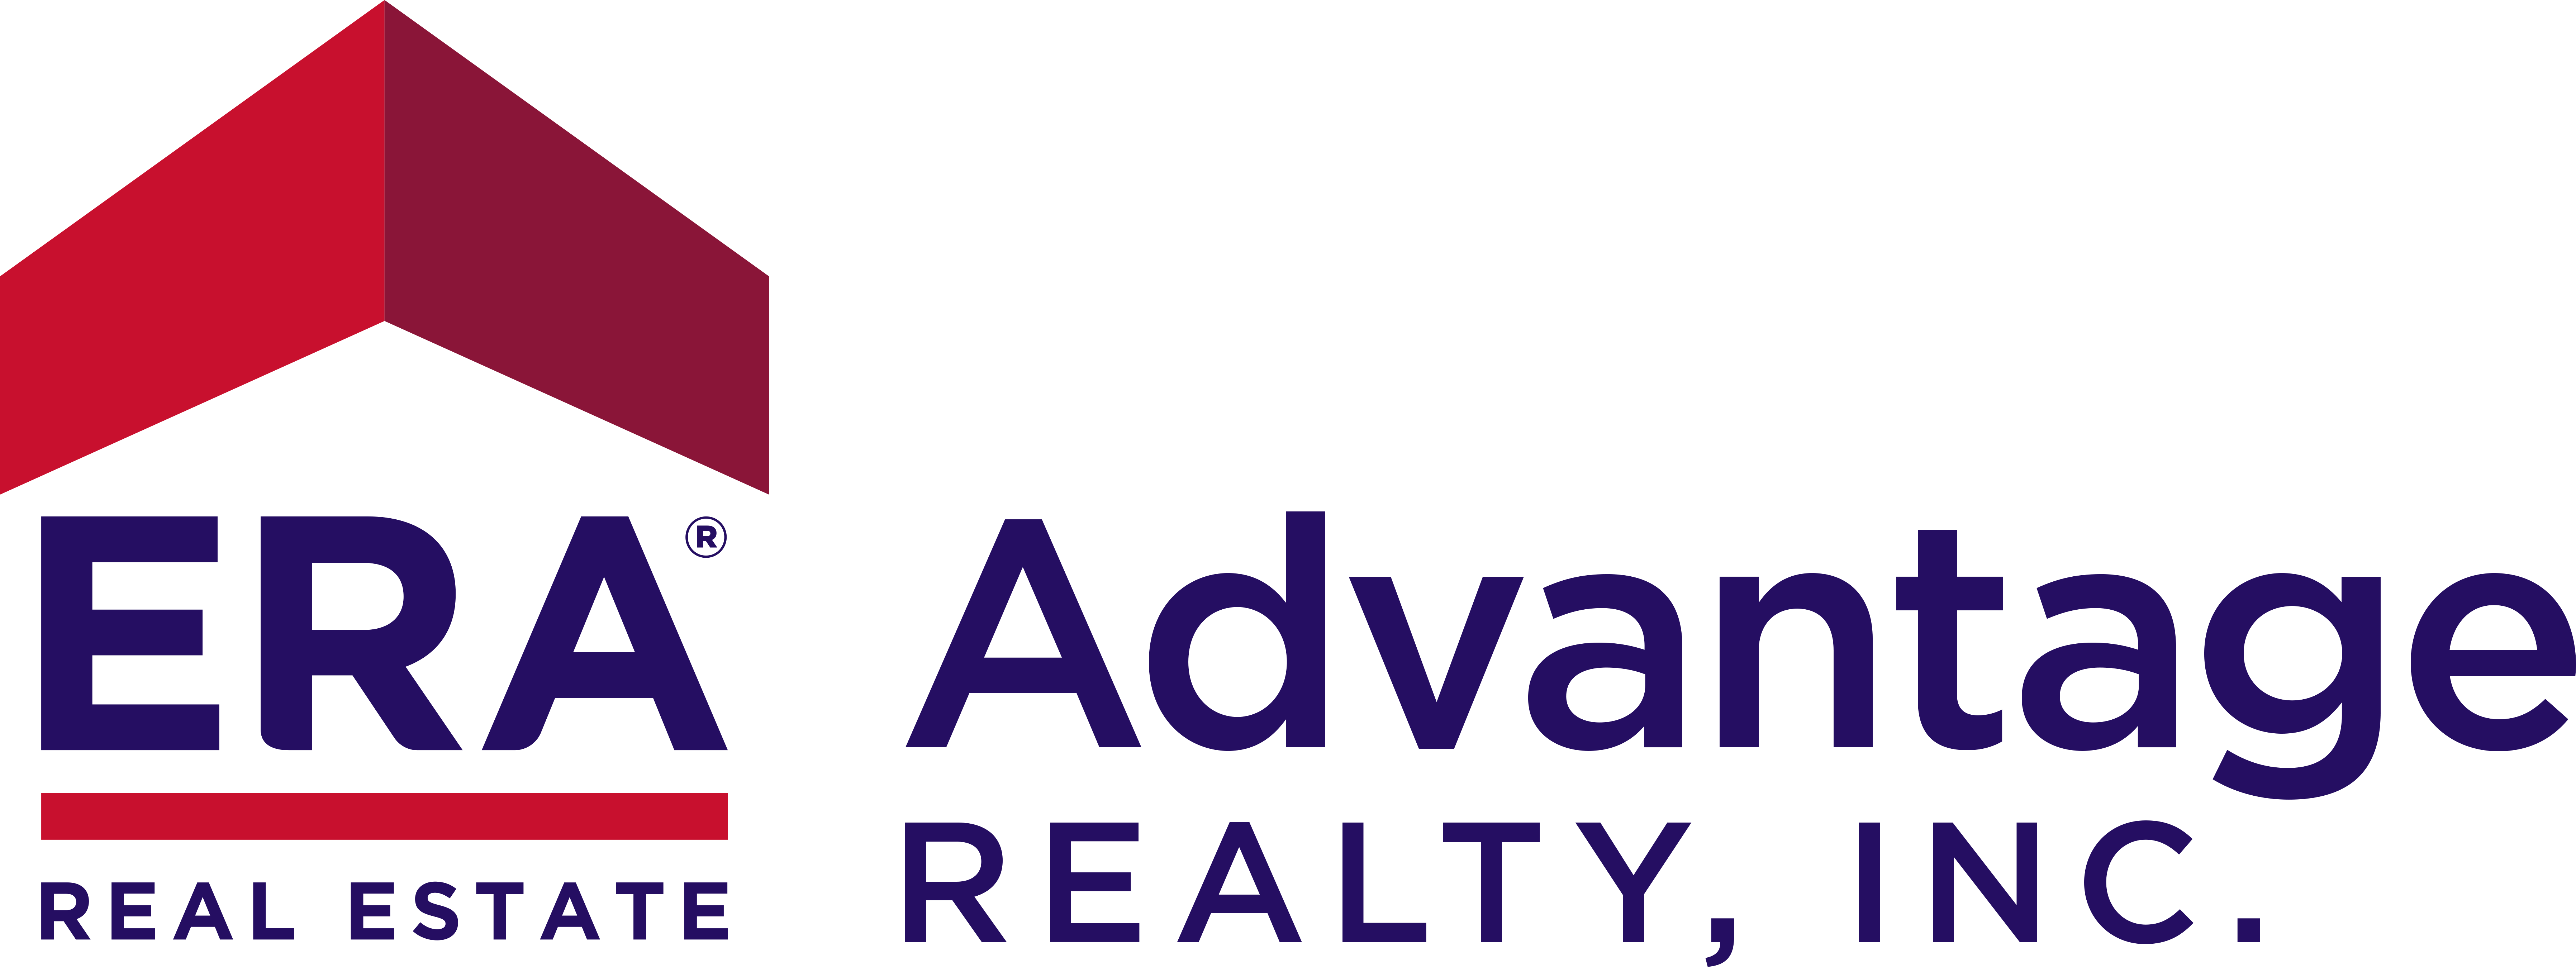 ERA Advantage Realty, INC Logo